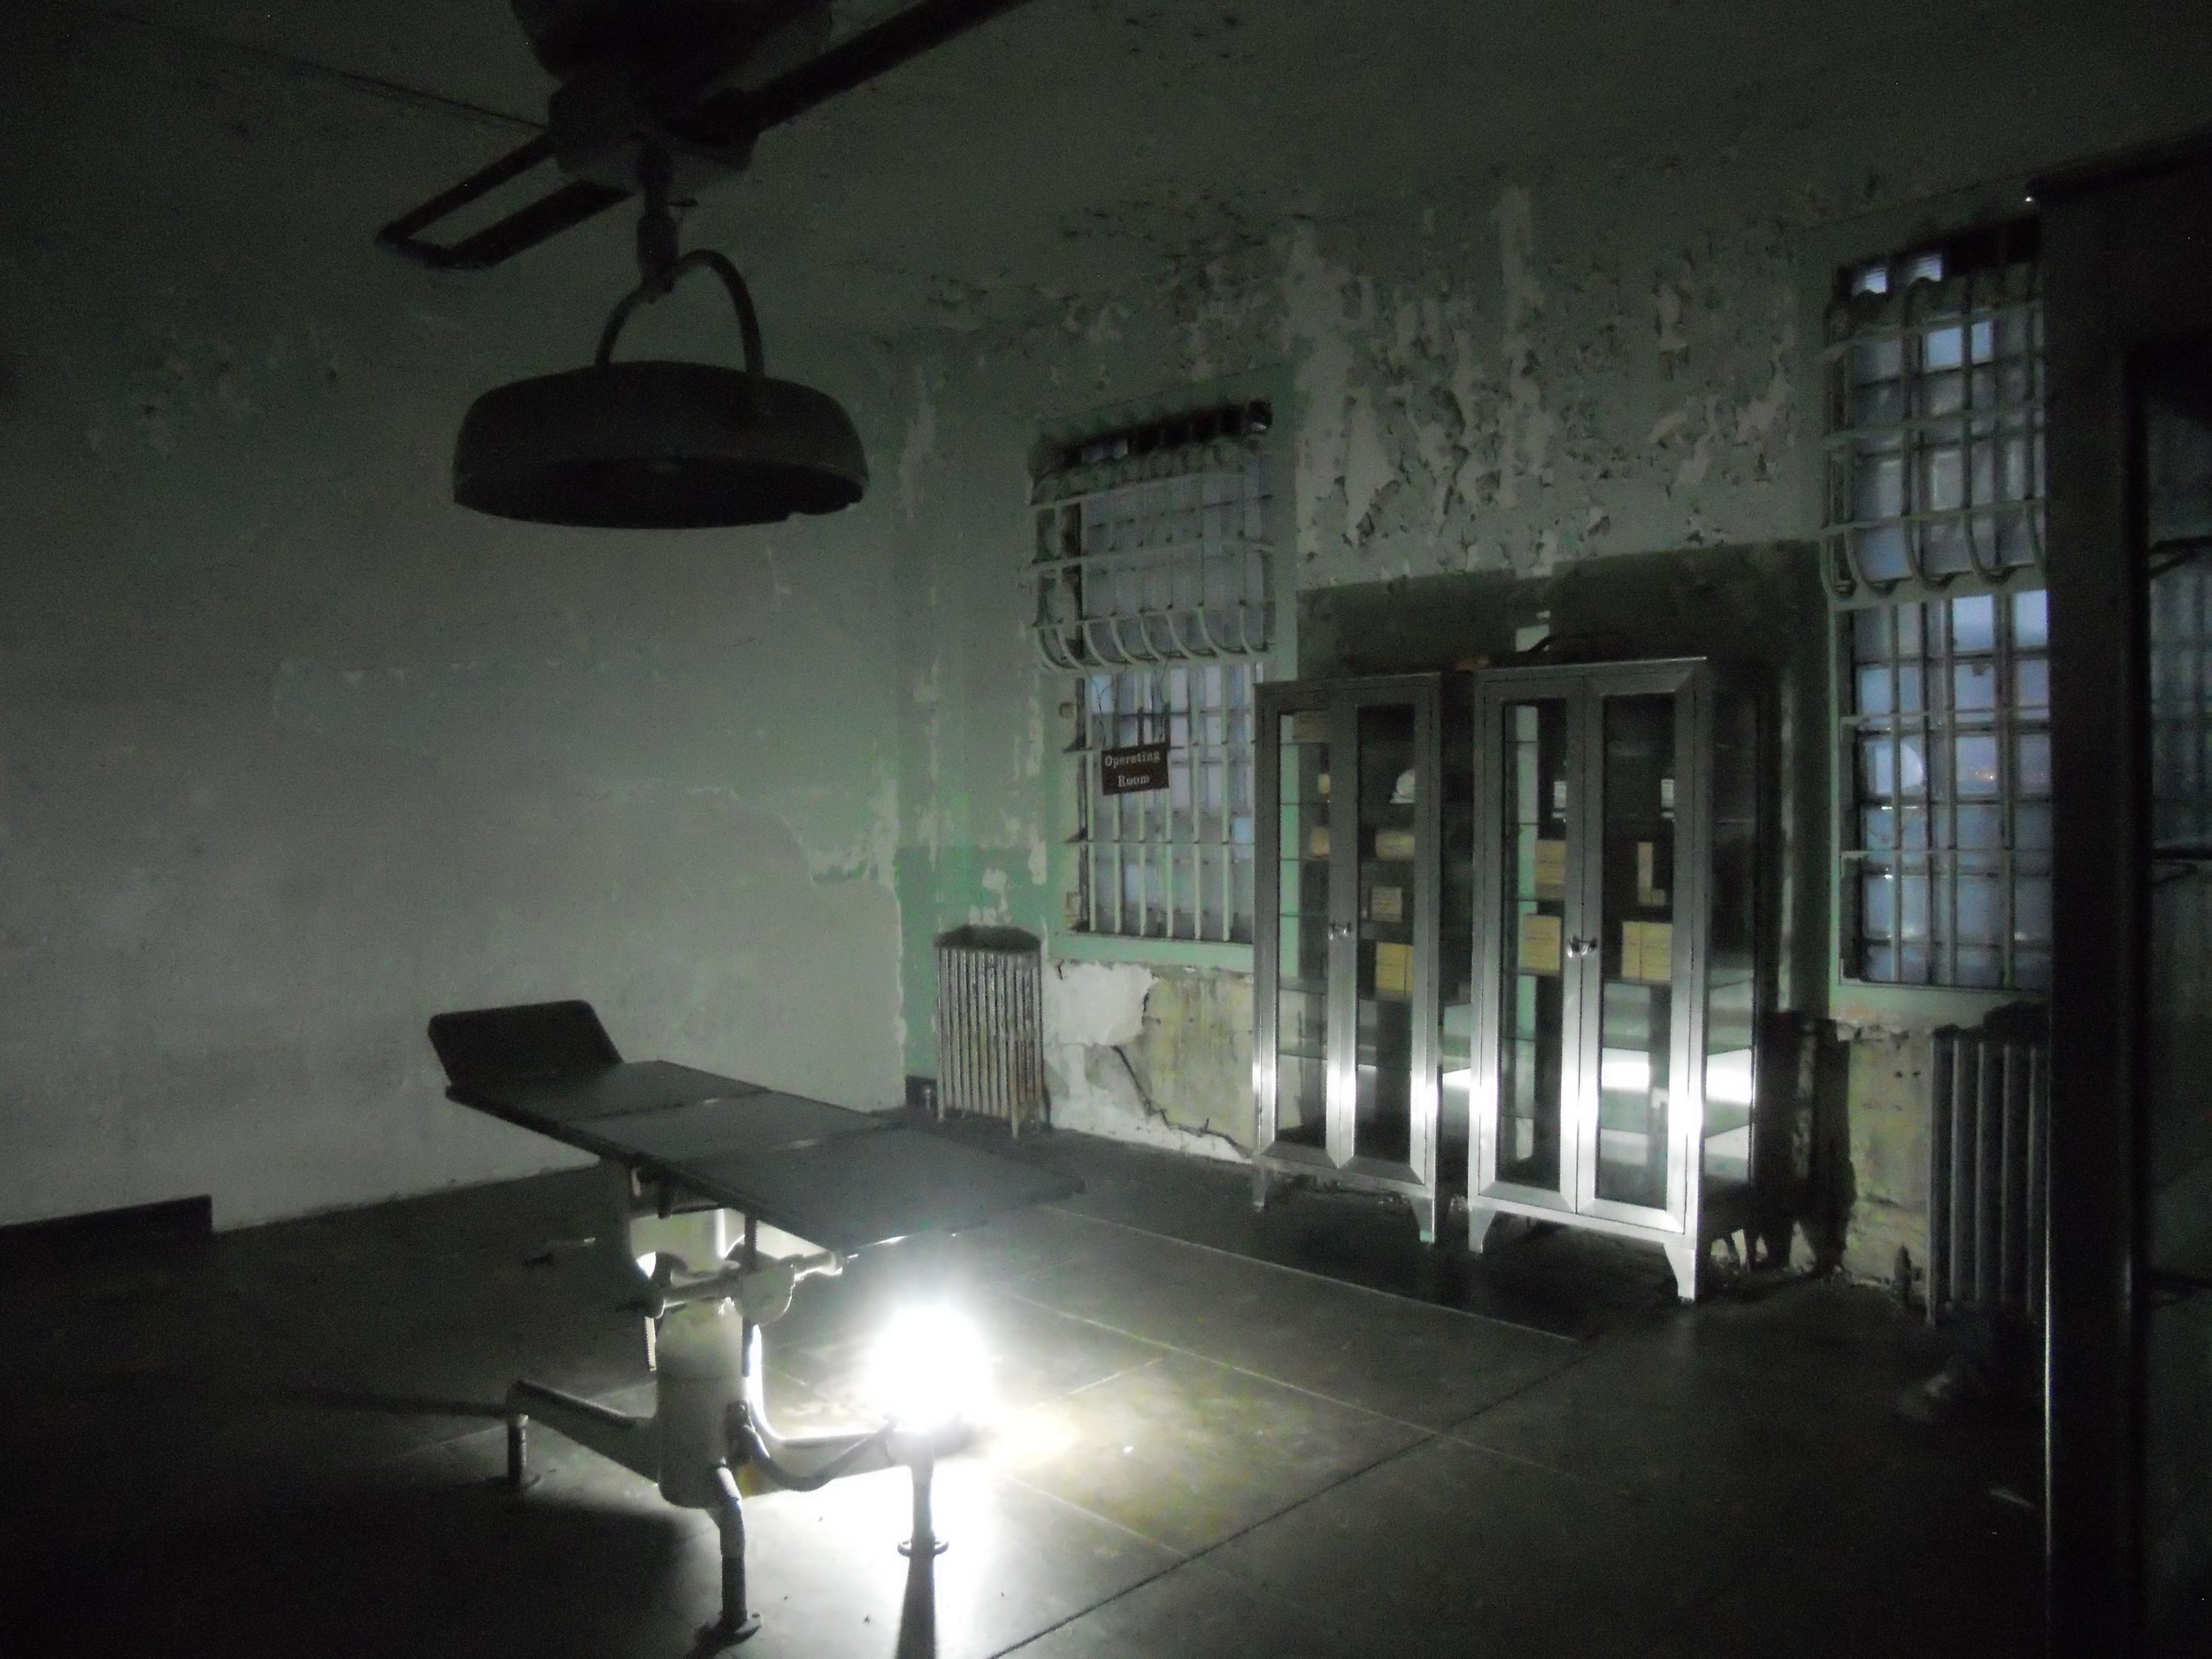 A medical operating room during the night tour